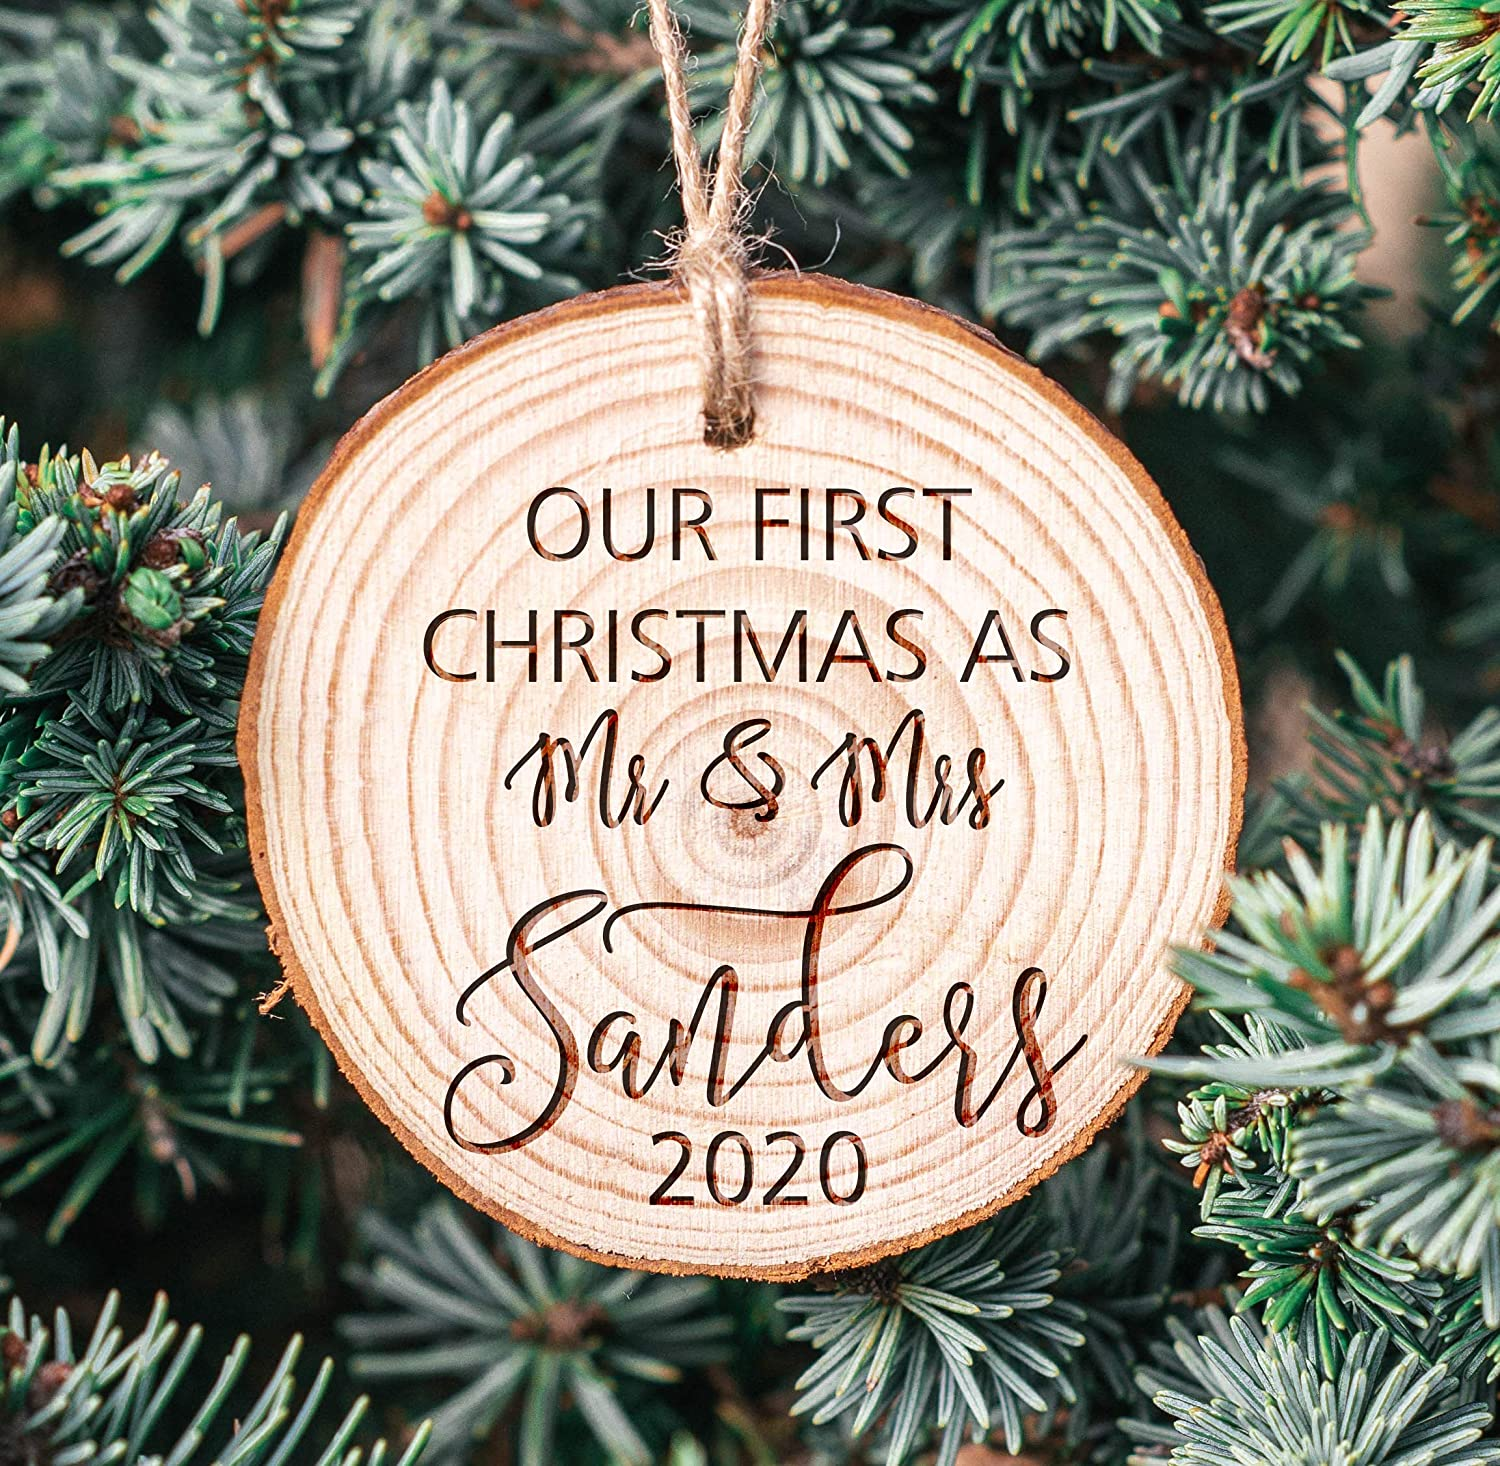 Newlywed Gift Our First Christmas Ornament Married Mr and Mrs Personalized Christmas Ornament Personalized Ornament First Christmas